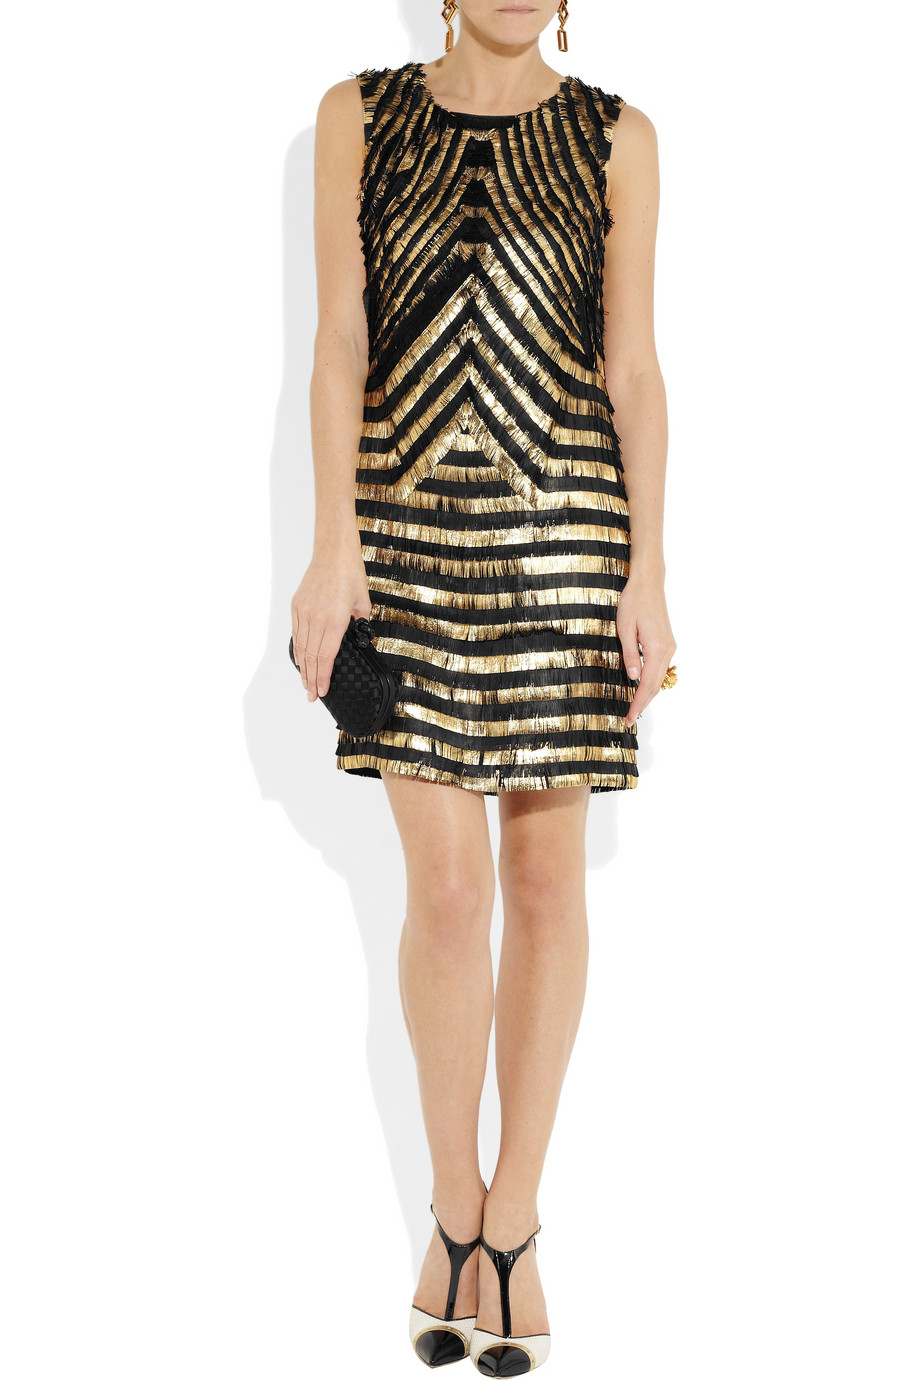 Lyst Gucci Metallic Striped Fringed Leather Dress In Black